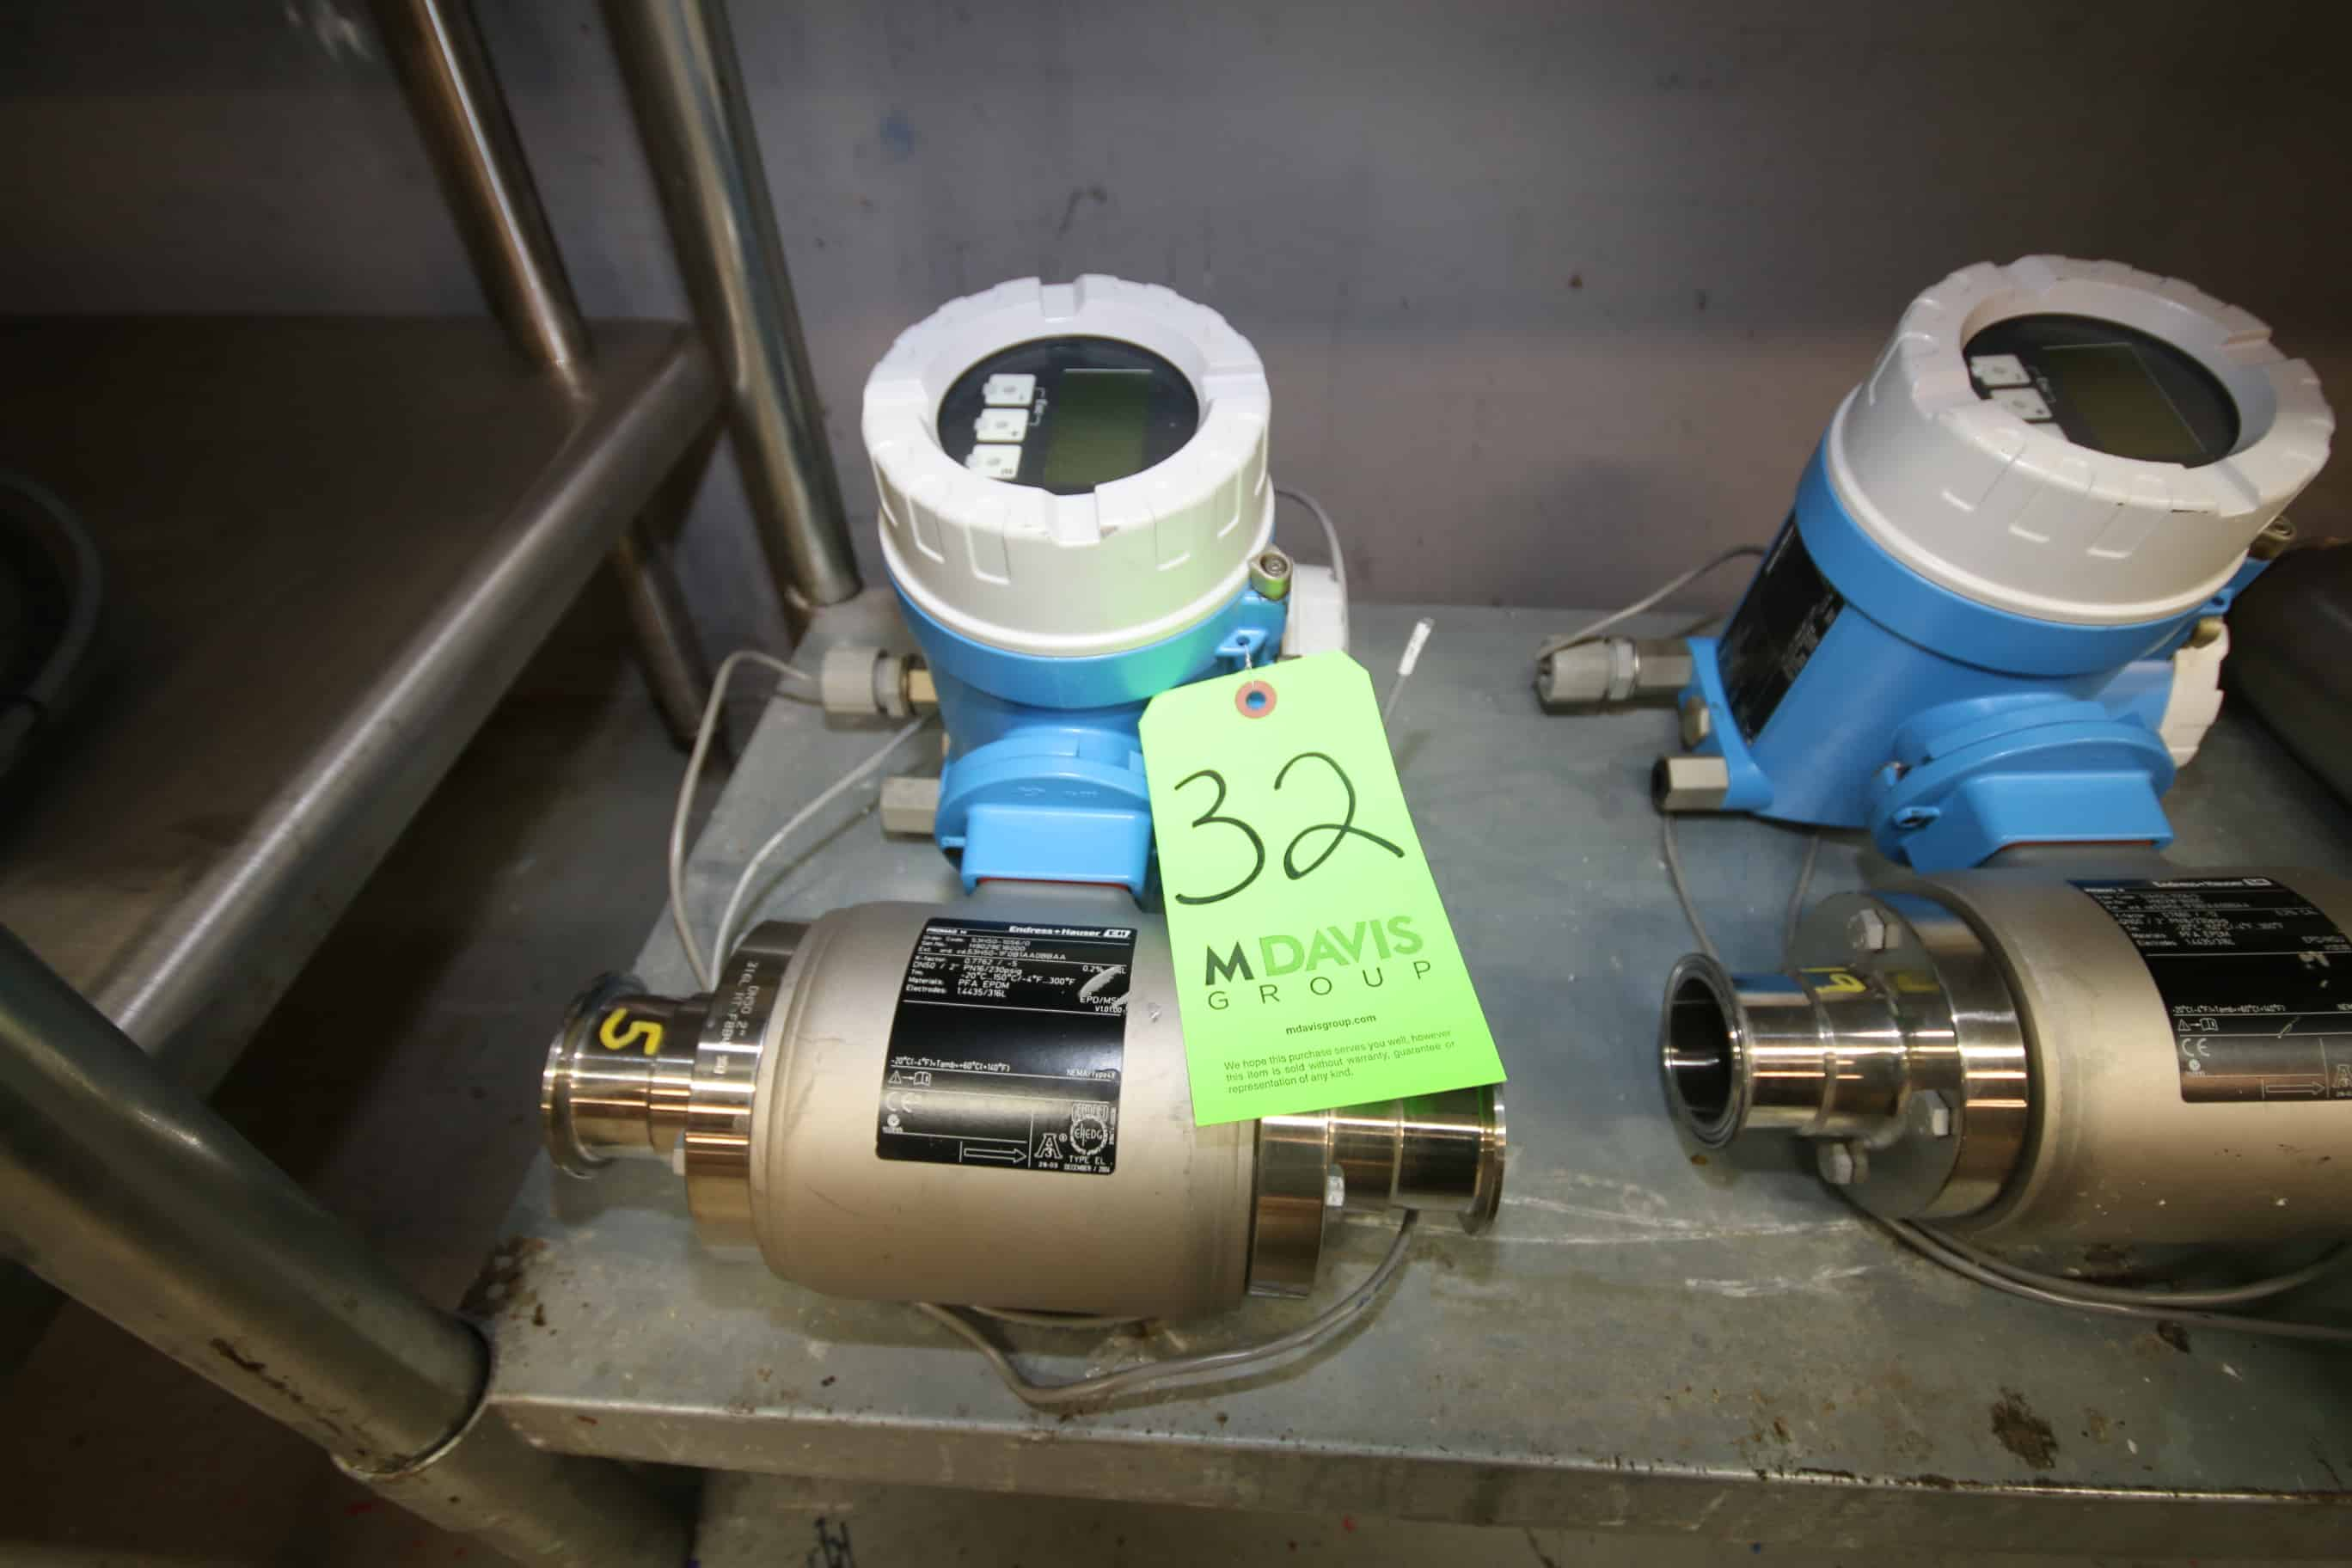 "Endress + Hauser 2"" Clamp Type Digital Flow Meter with Body, Model ProMag H, S/N H9029E1600 and Controller, Model 53 Read-Out, S/N H9029E1600"